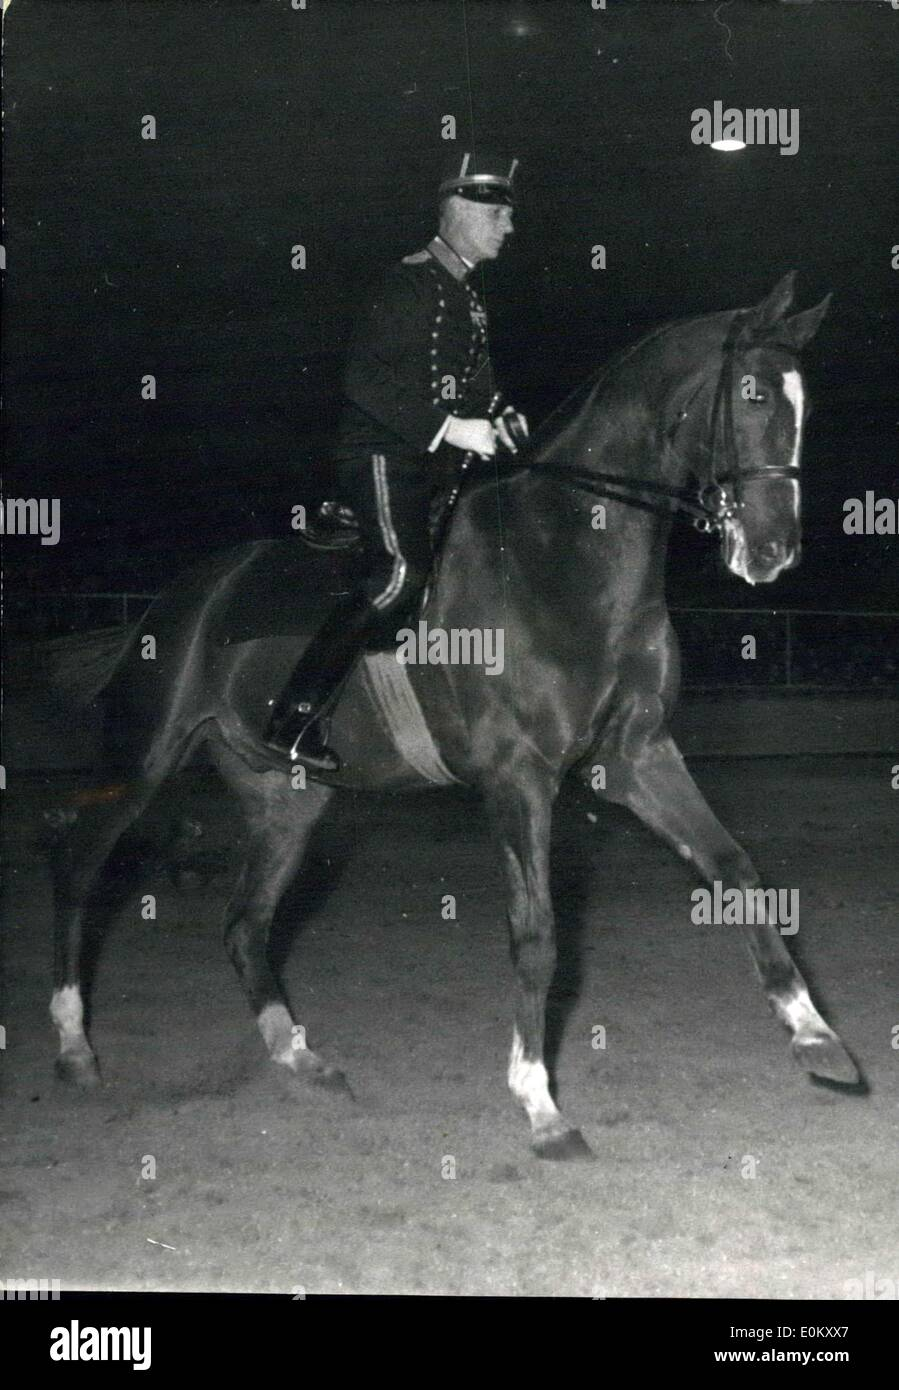 Oct. 18, 1952 - Olympic Champion's fine display at Paris Horsemanship show: Major Saint-CYR (of the Swedish army) Olympic champion giving a display of fine horsemanship at the palais des sports, Paris, last night. - Stock Image